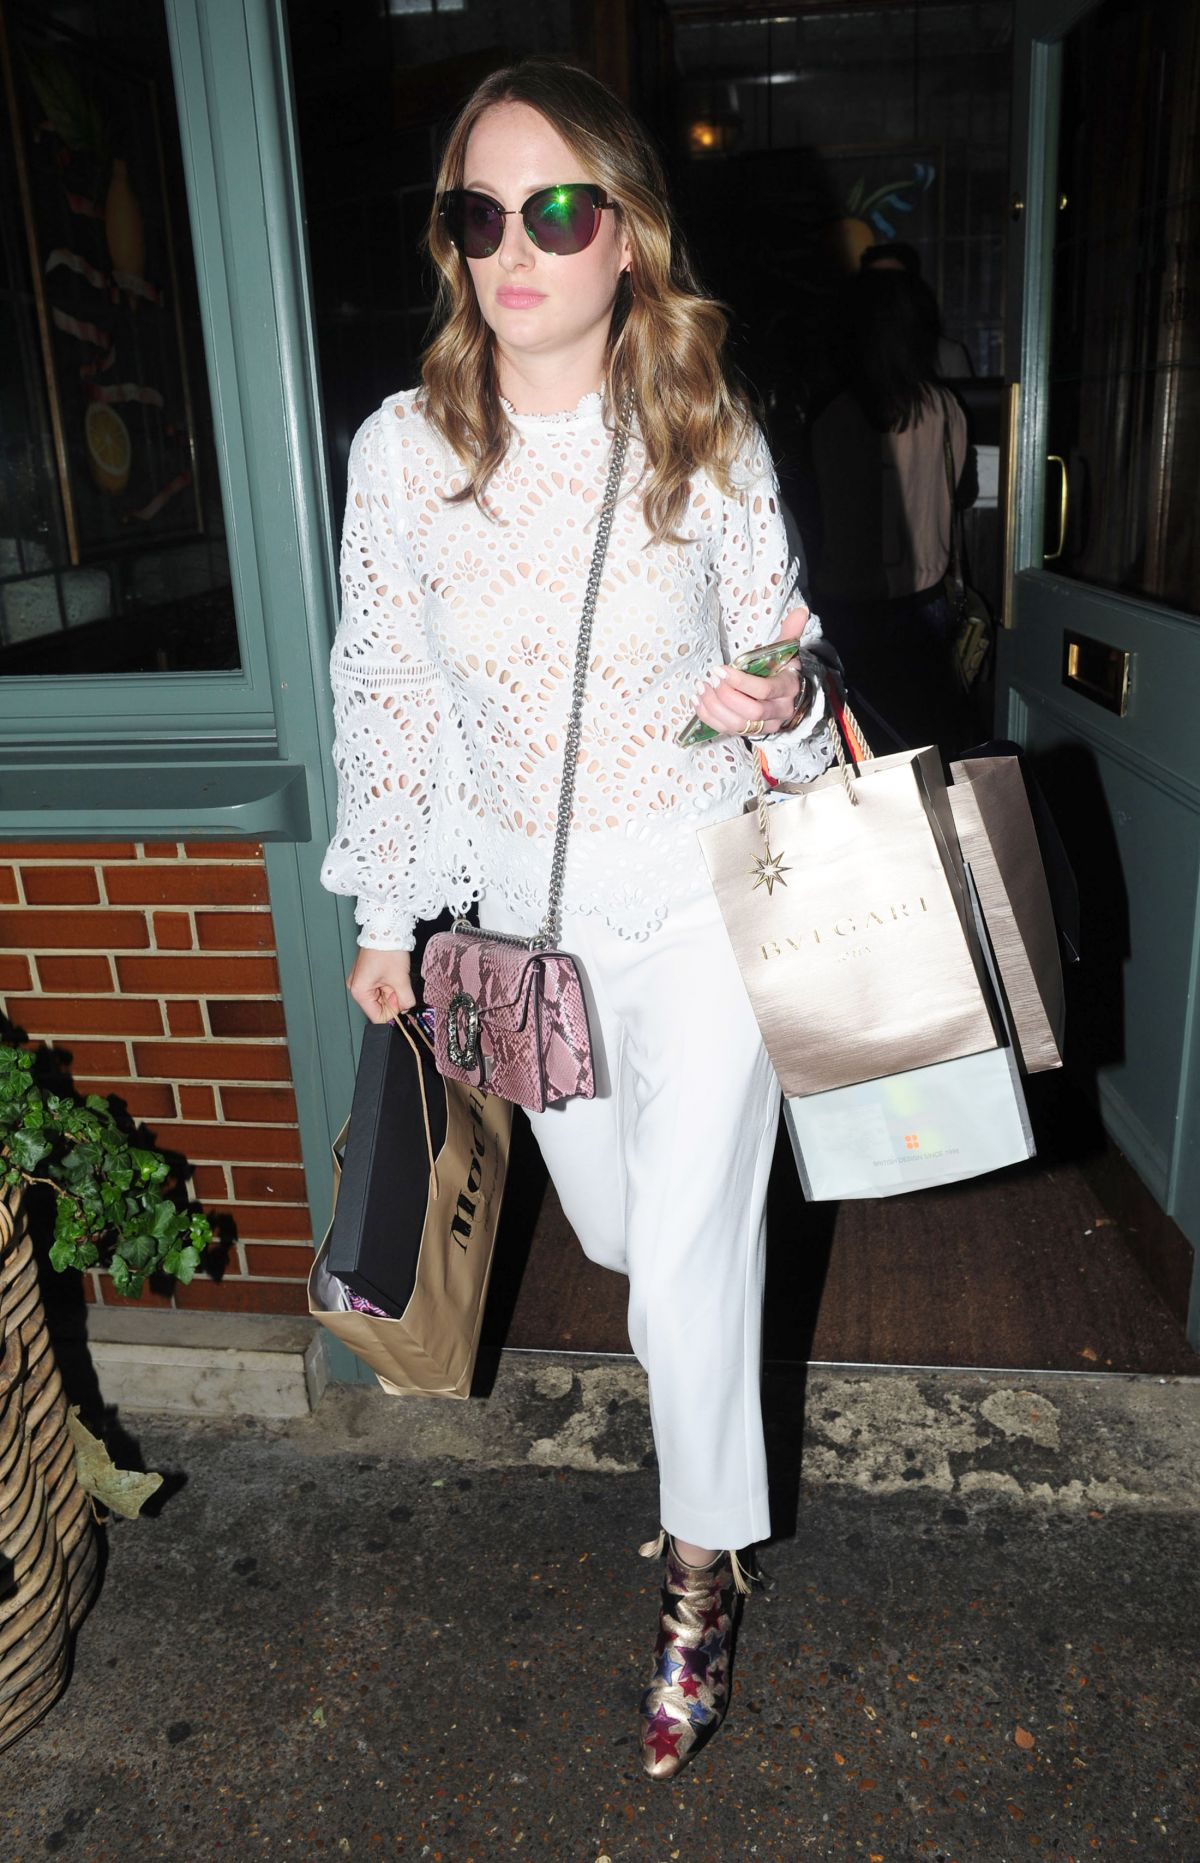 ROSIE FORTESCUE at Ivy Garden in Chelsea 08/03/2016